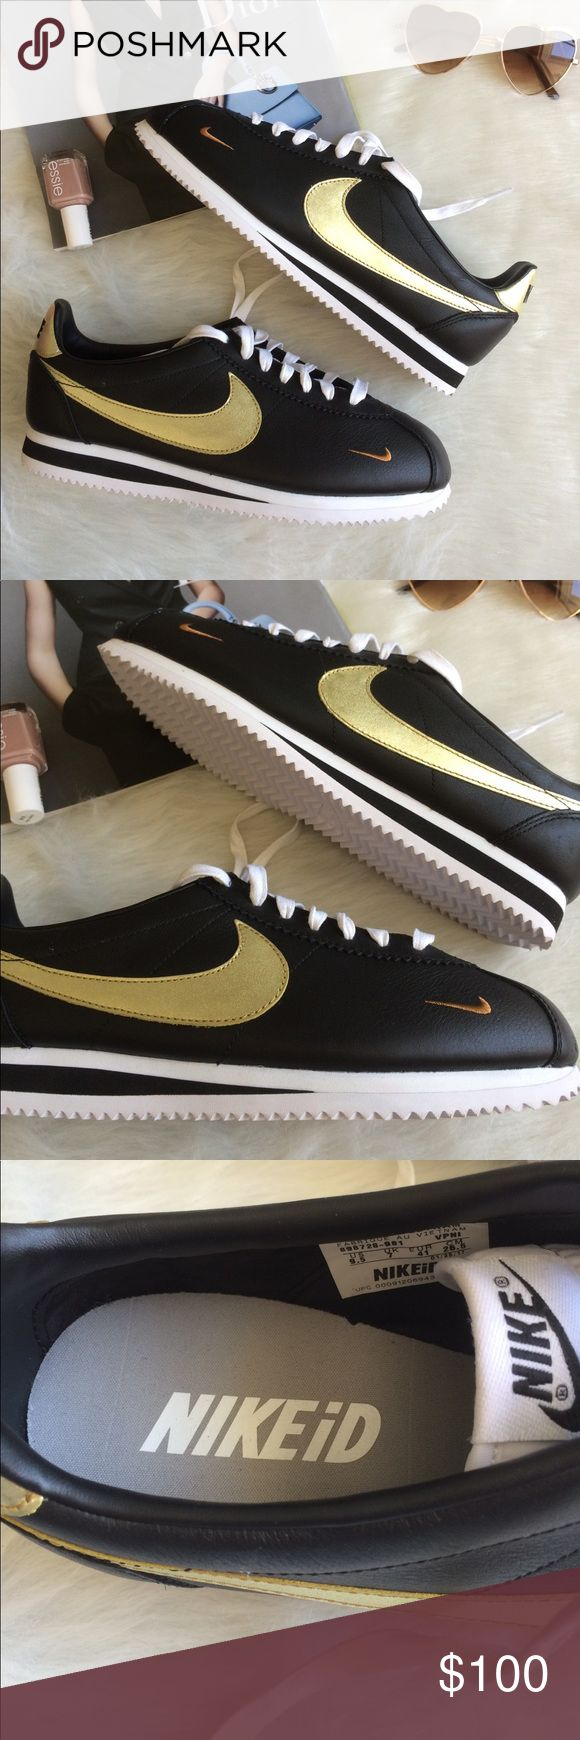 NIKE CORTEZ CUSTOM iD BLACK GOLD WOMENS SHOES Brand new without box Nike Shoes Sneakers